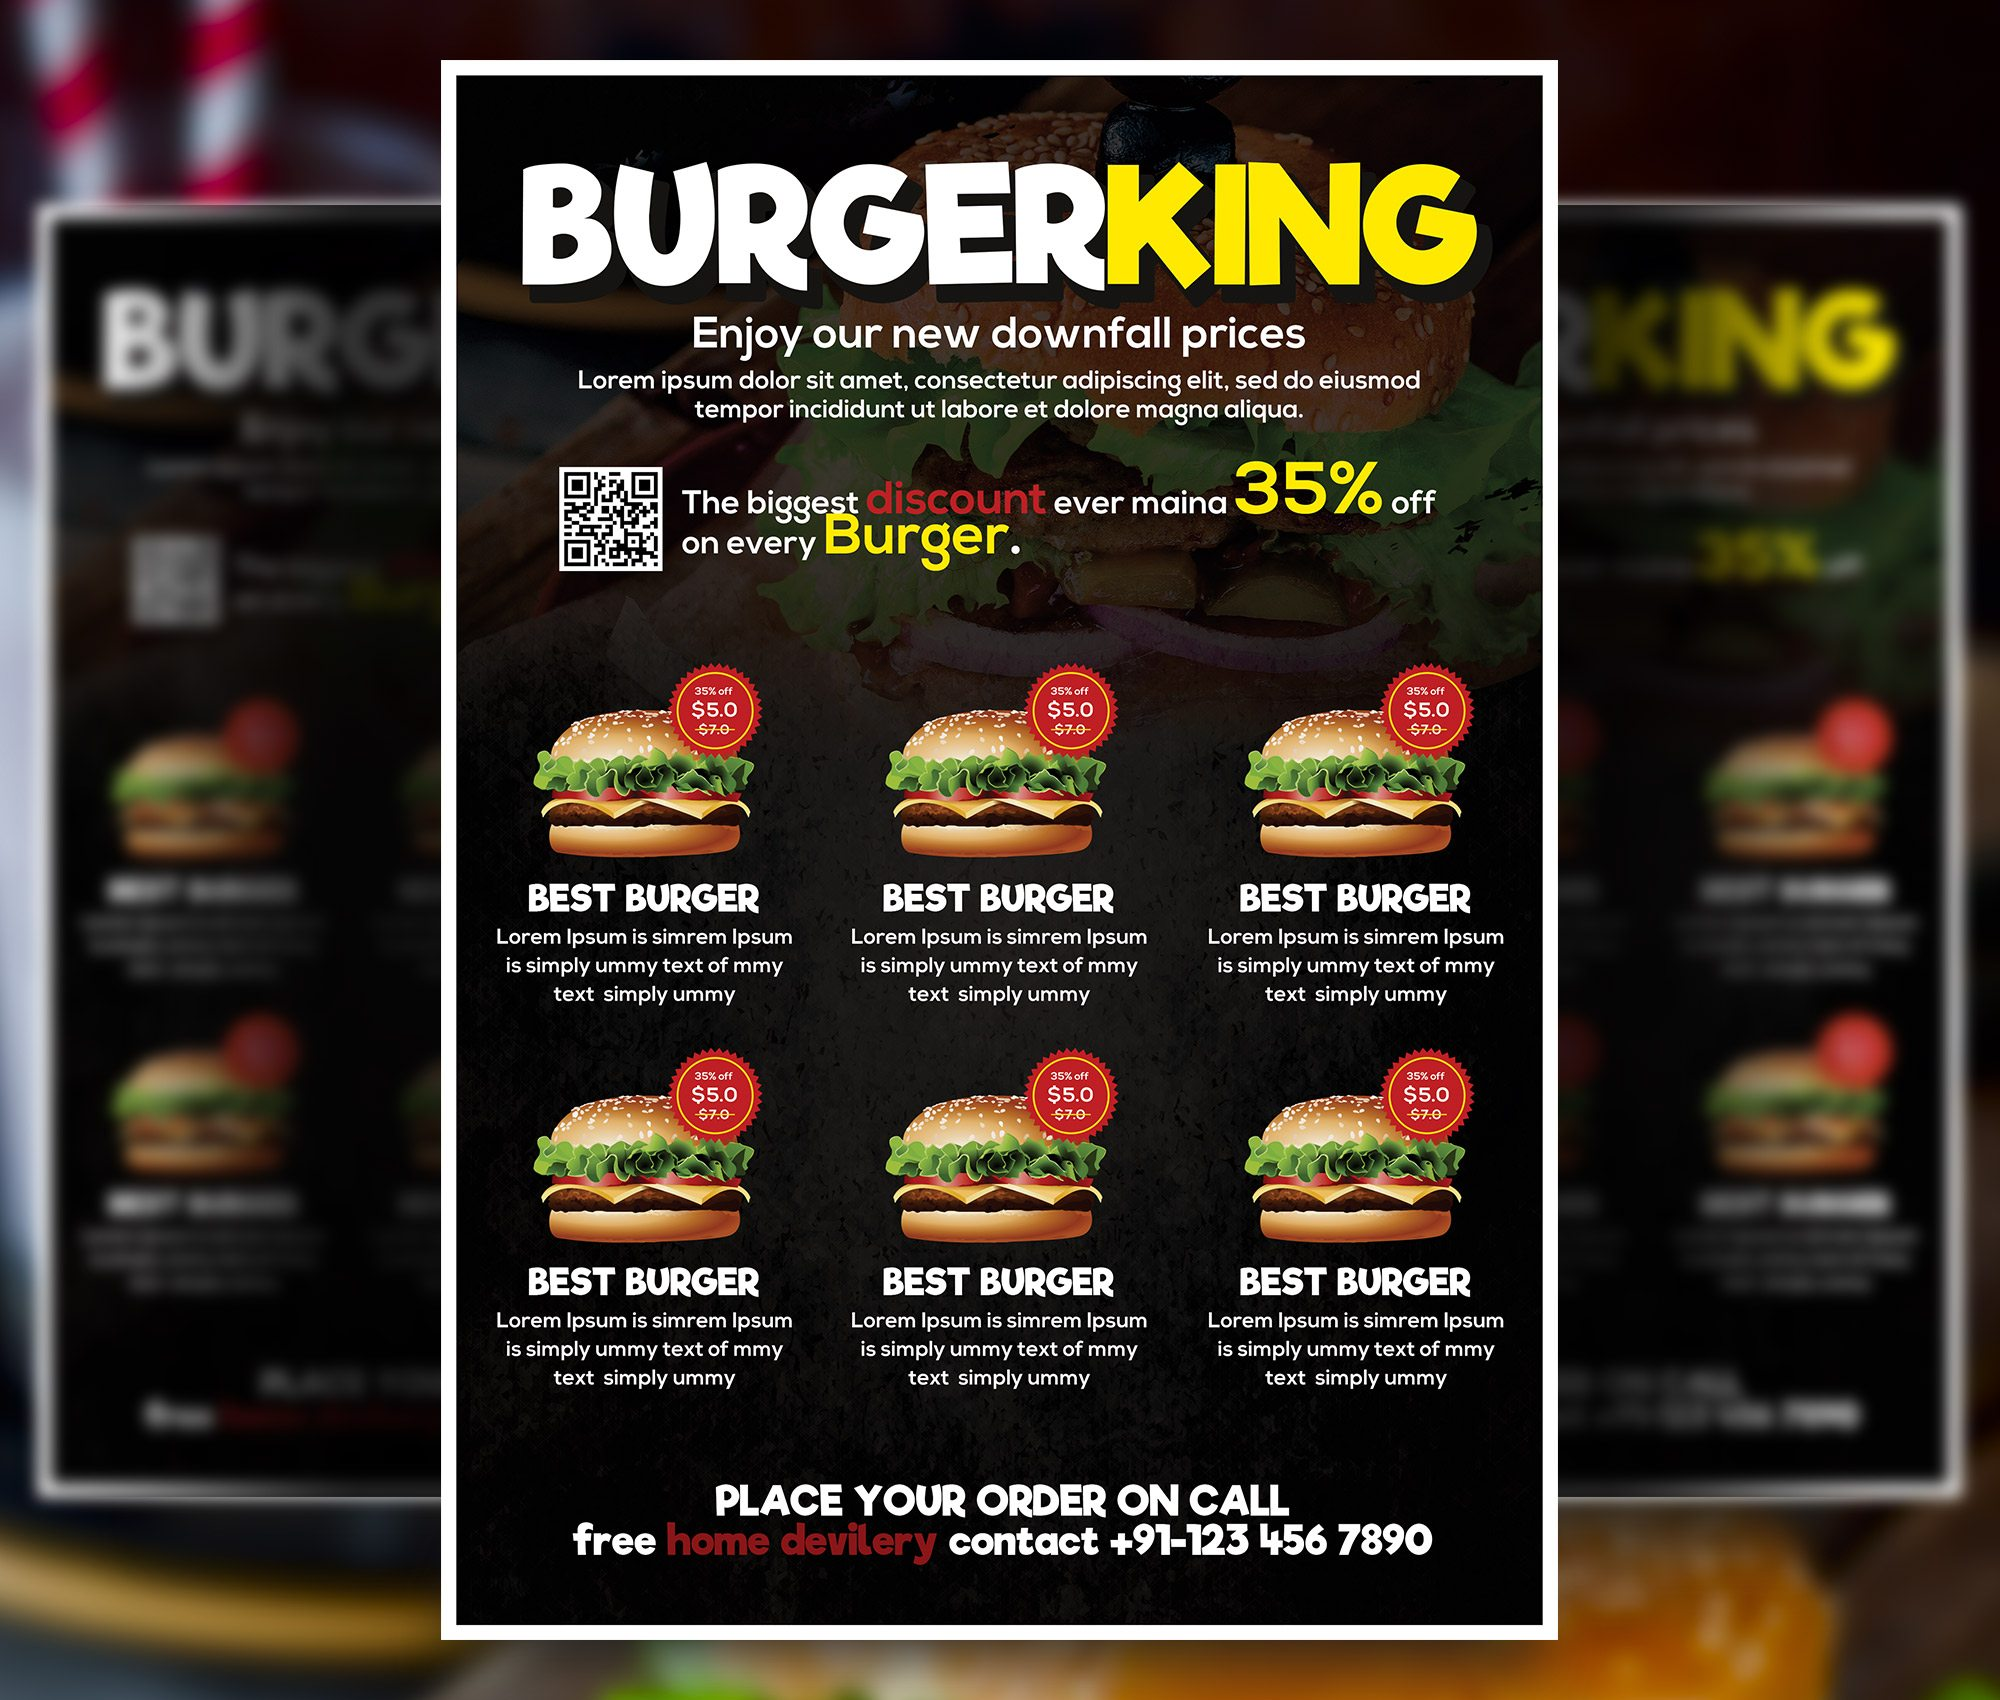 restaurant flyer psd free download,burger flyer template,burger flyer psd free,free burger flyer template,food flyers design,pizza flyer template free download,restaurant flyer template word,free food psd,Burger Menu Free Flyer PSD